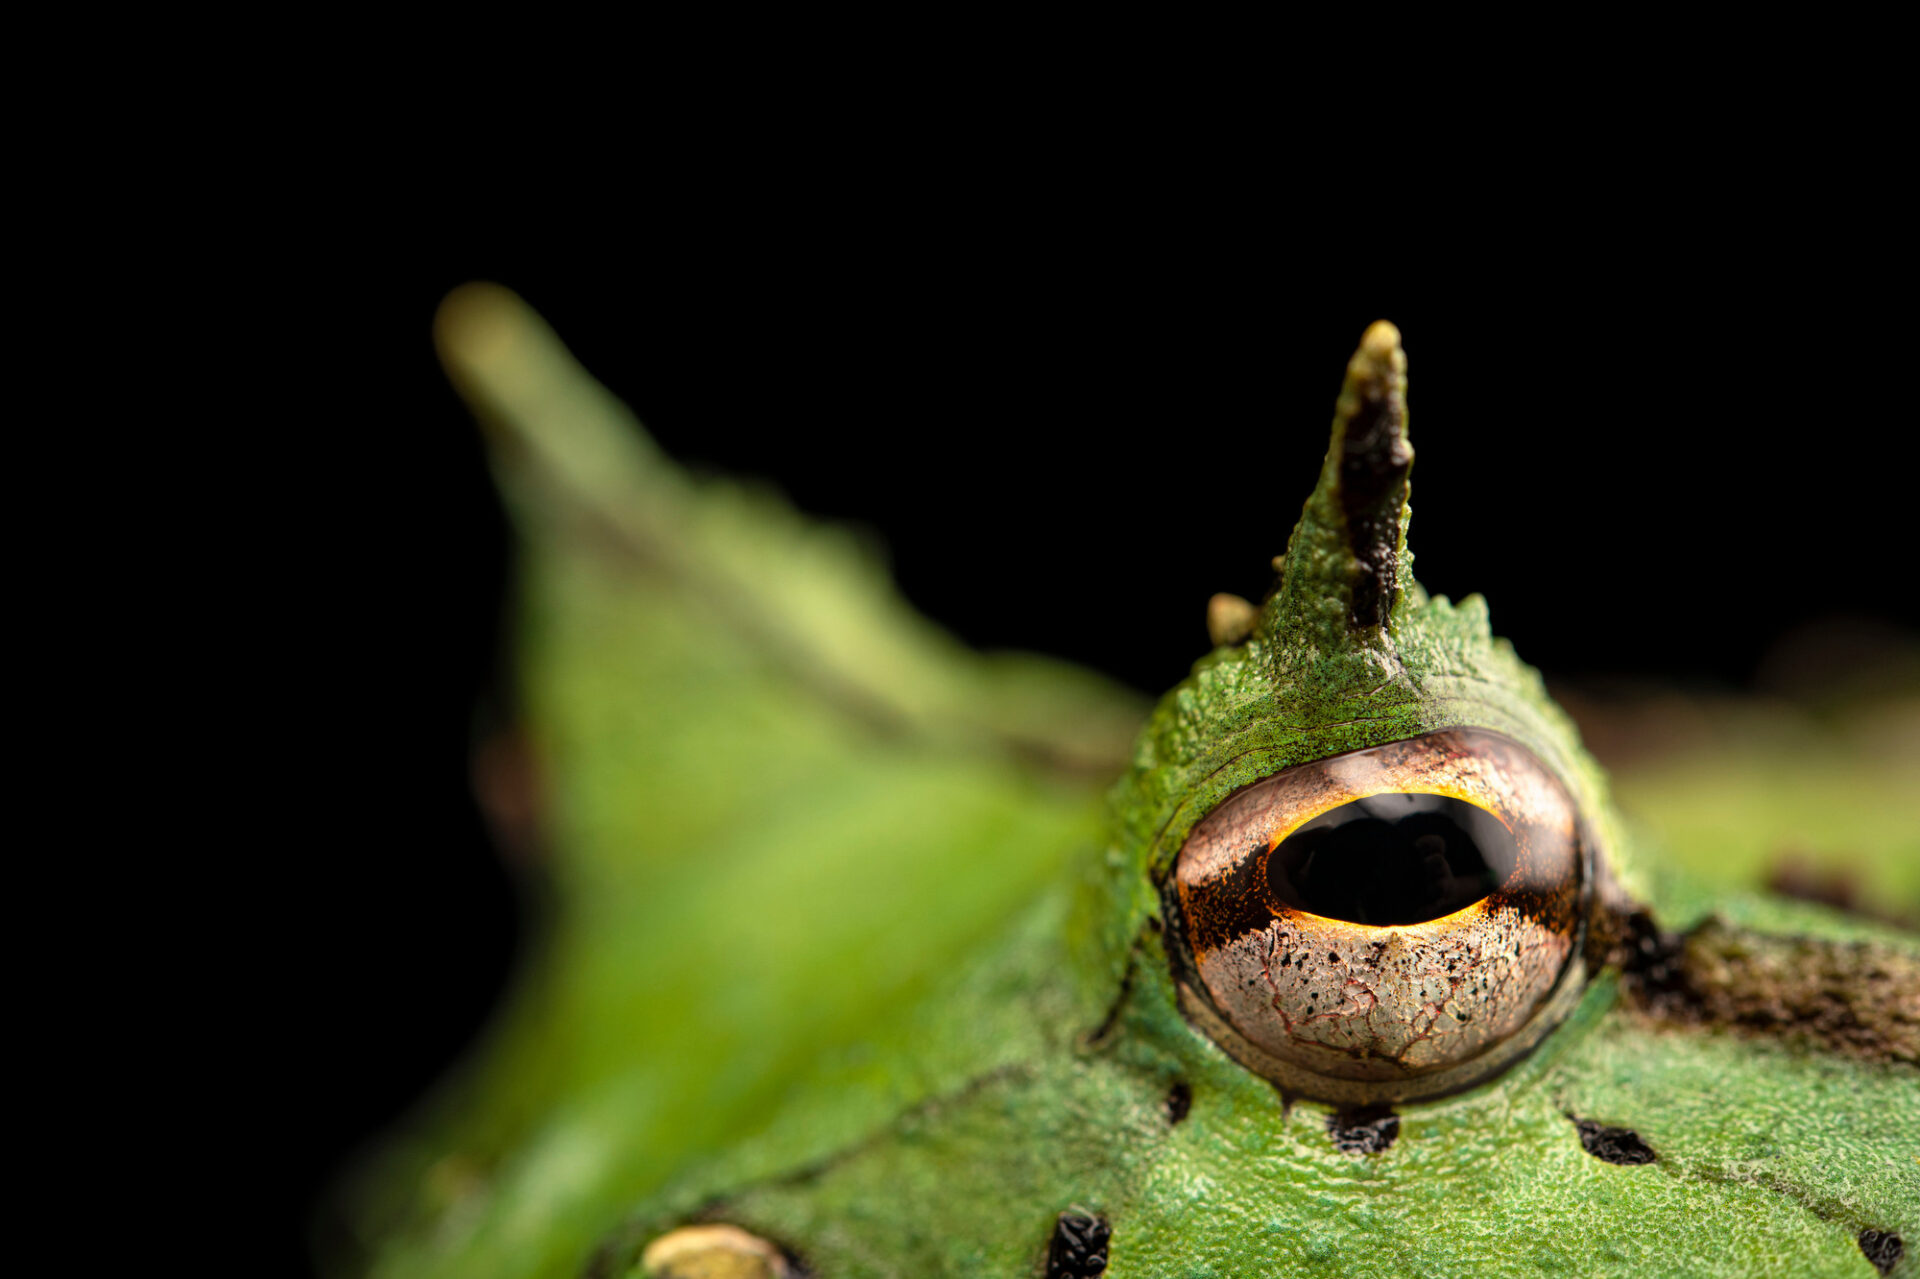 Photo: A horned frog (Ceratophrys cornuta) at Balsa de los Sapos.